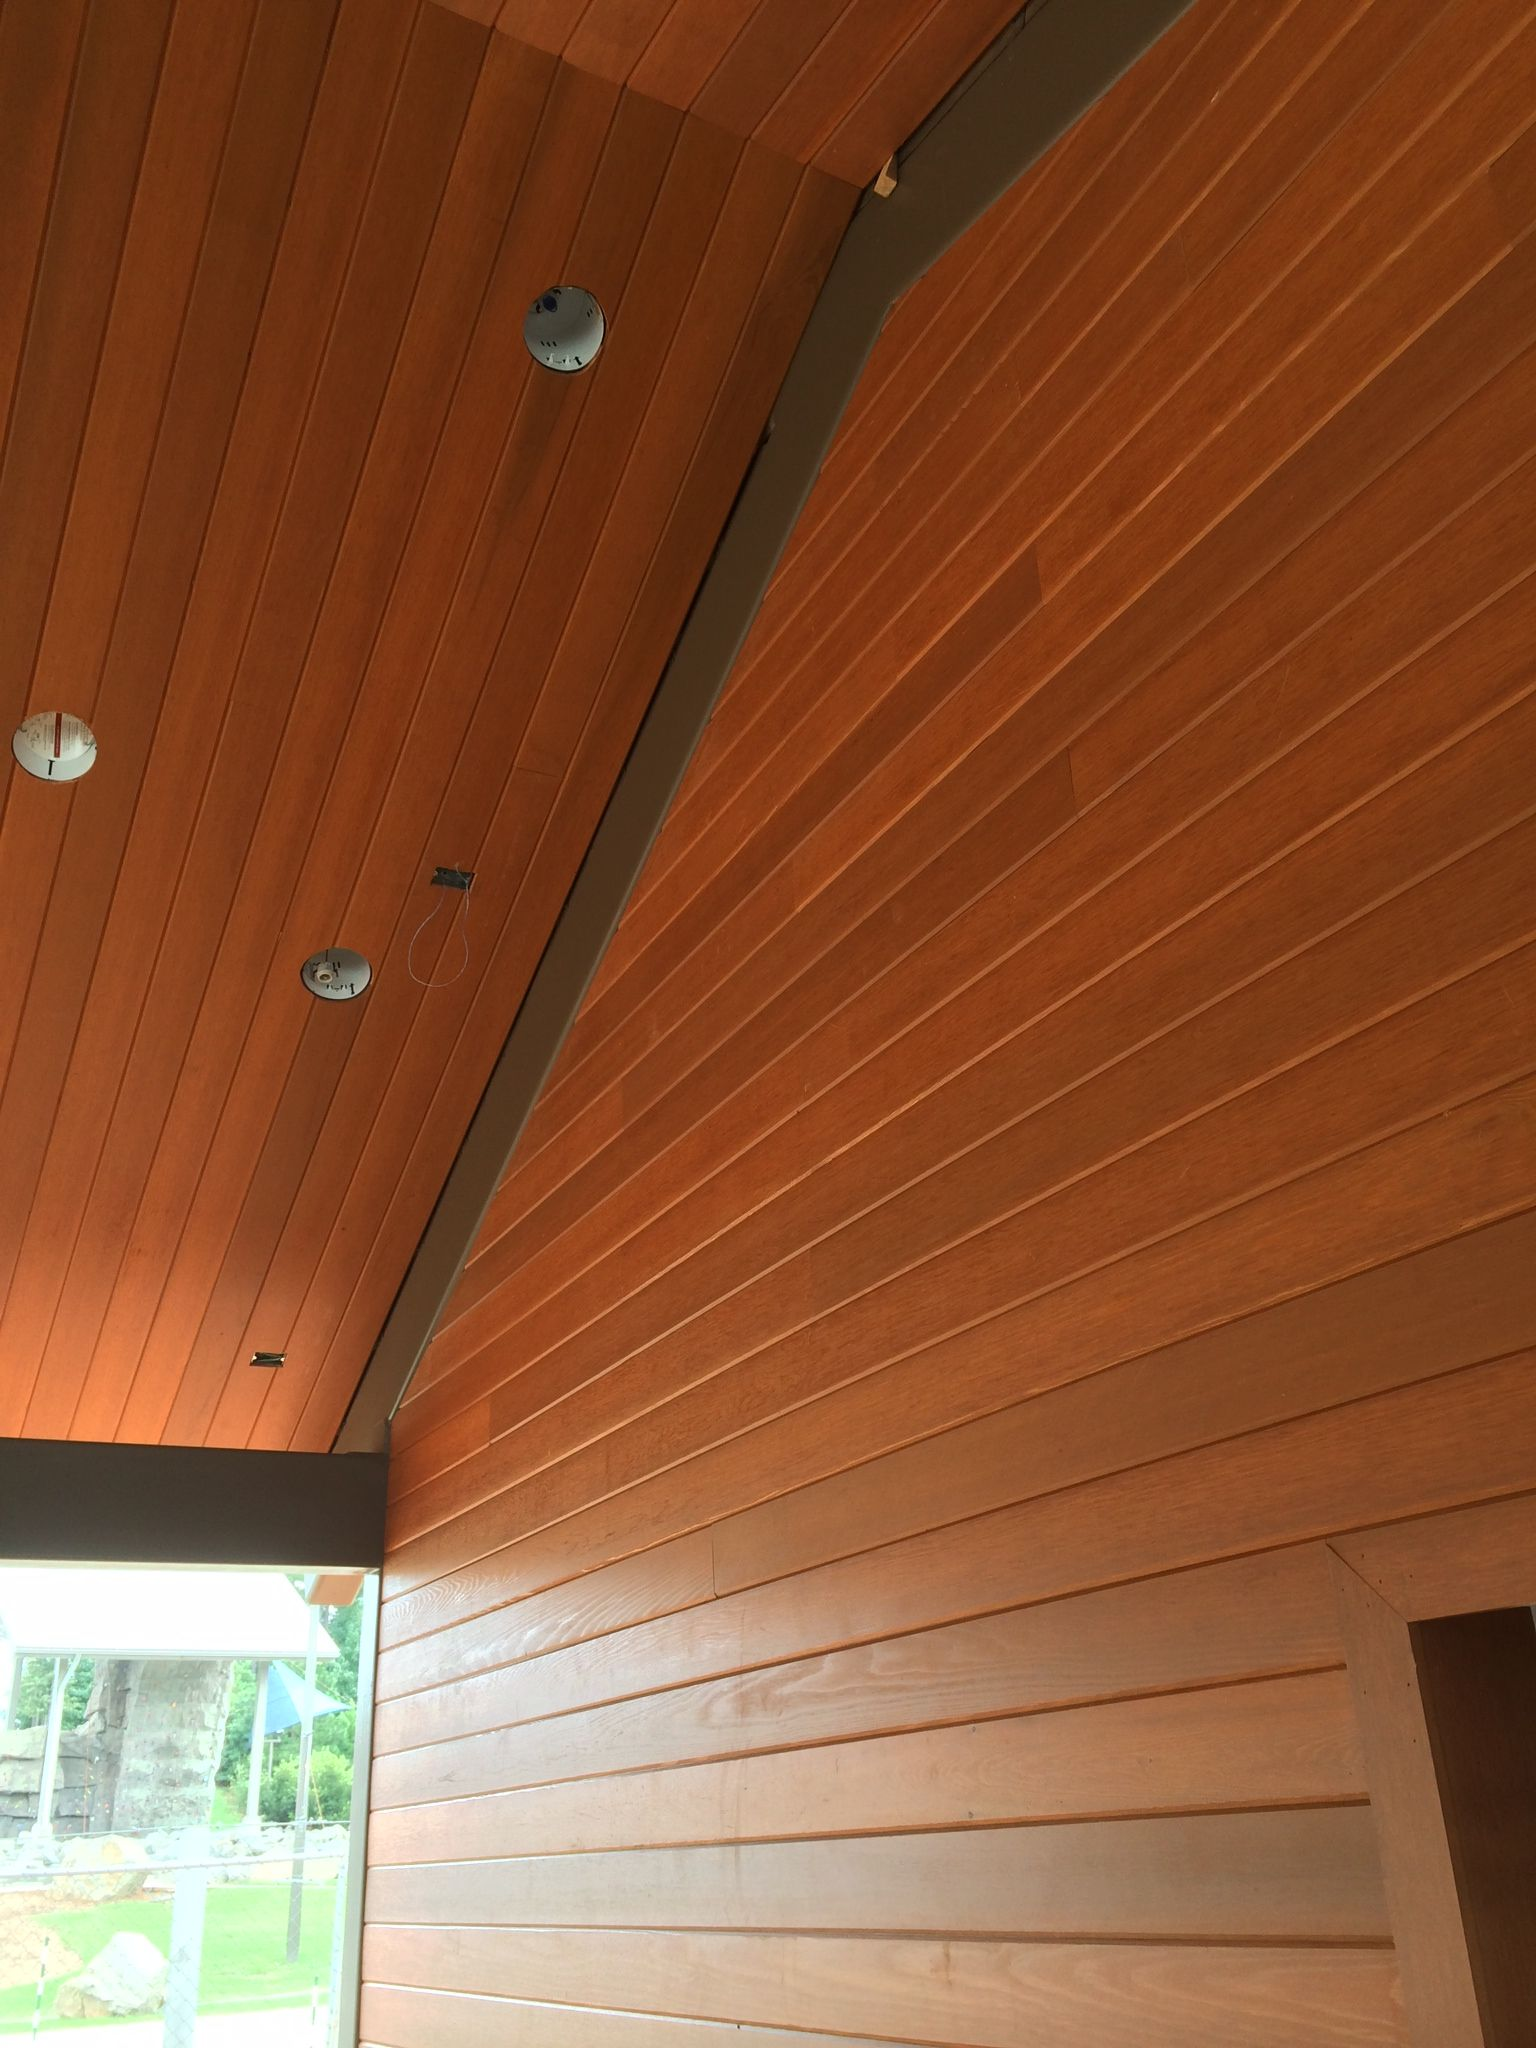 Before Installing Any Natural Wood That Will Be Exposed To The Weather Even If It Is Covered Ne Cedar Tongue And Groove Exterior Siding Materials Wood Siding